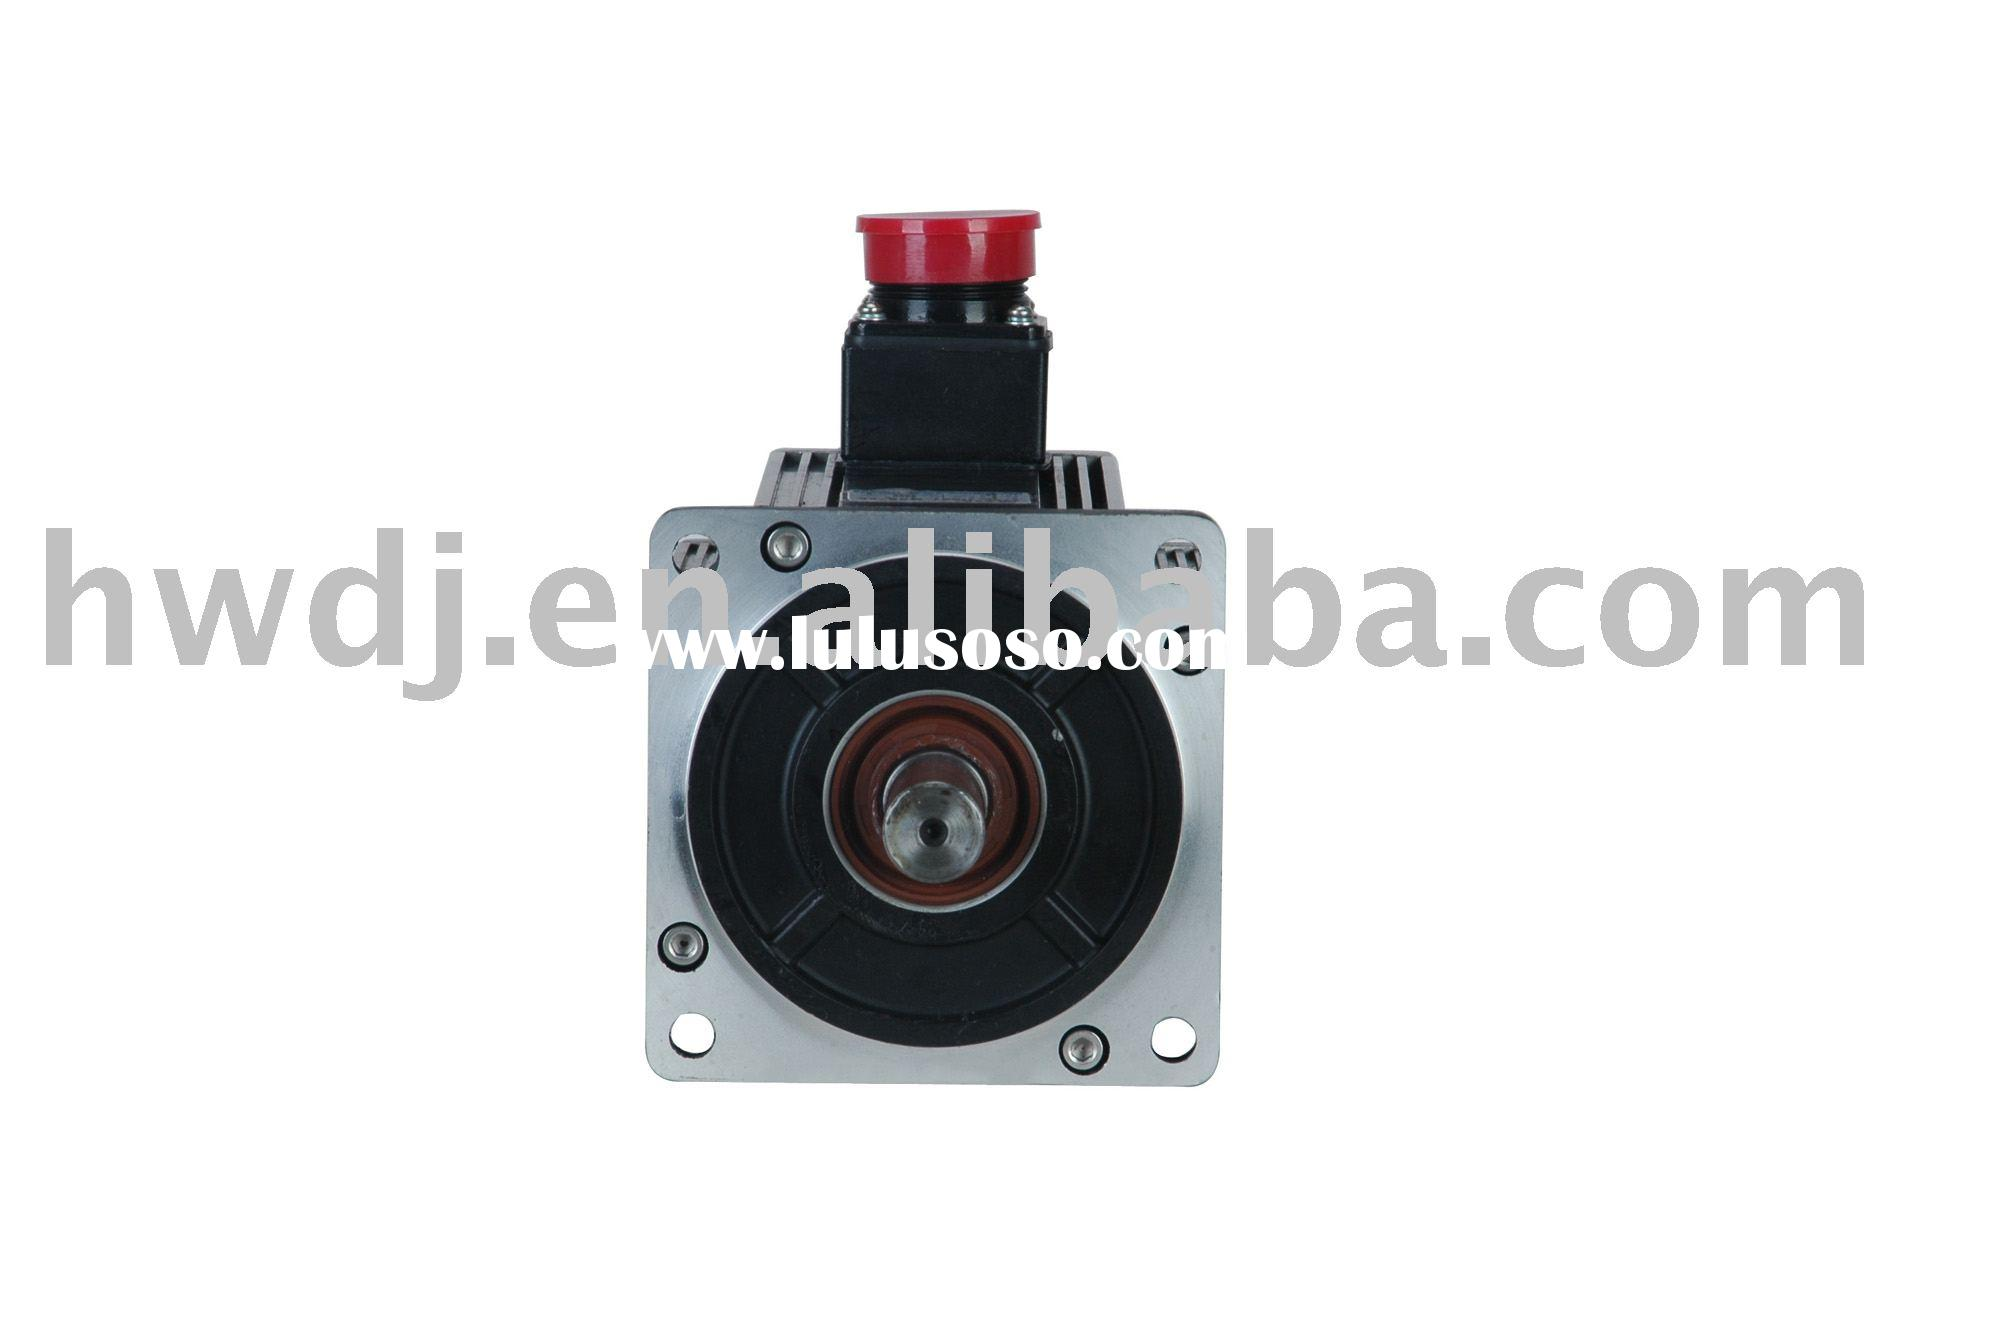 Dc brushless servo motor for sale price china for Servo motor for sale